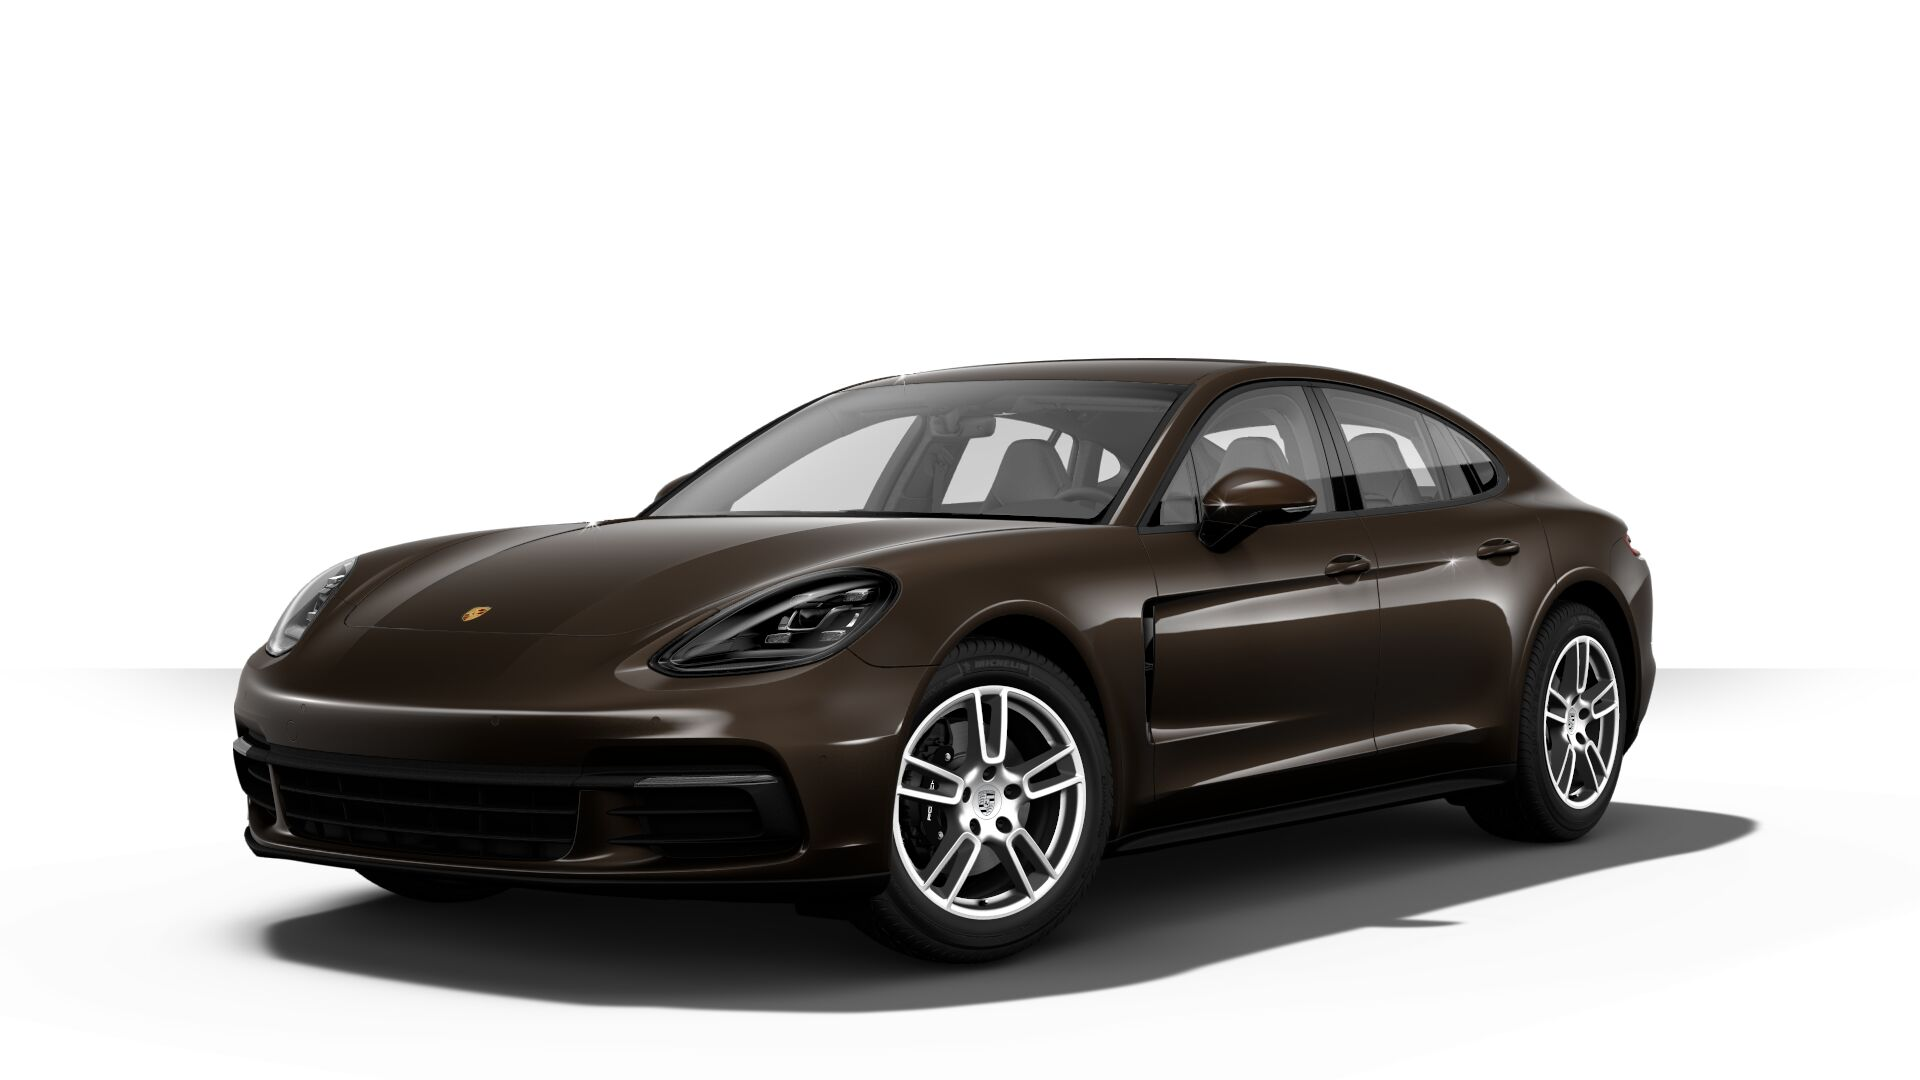 2019 Porsche Panamera in ristretto brown